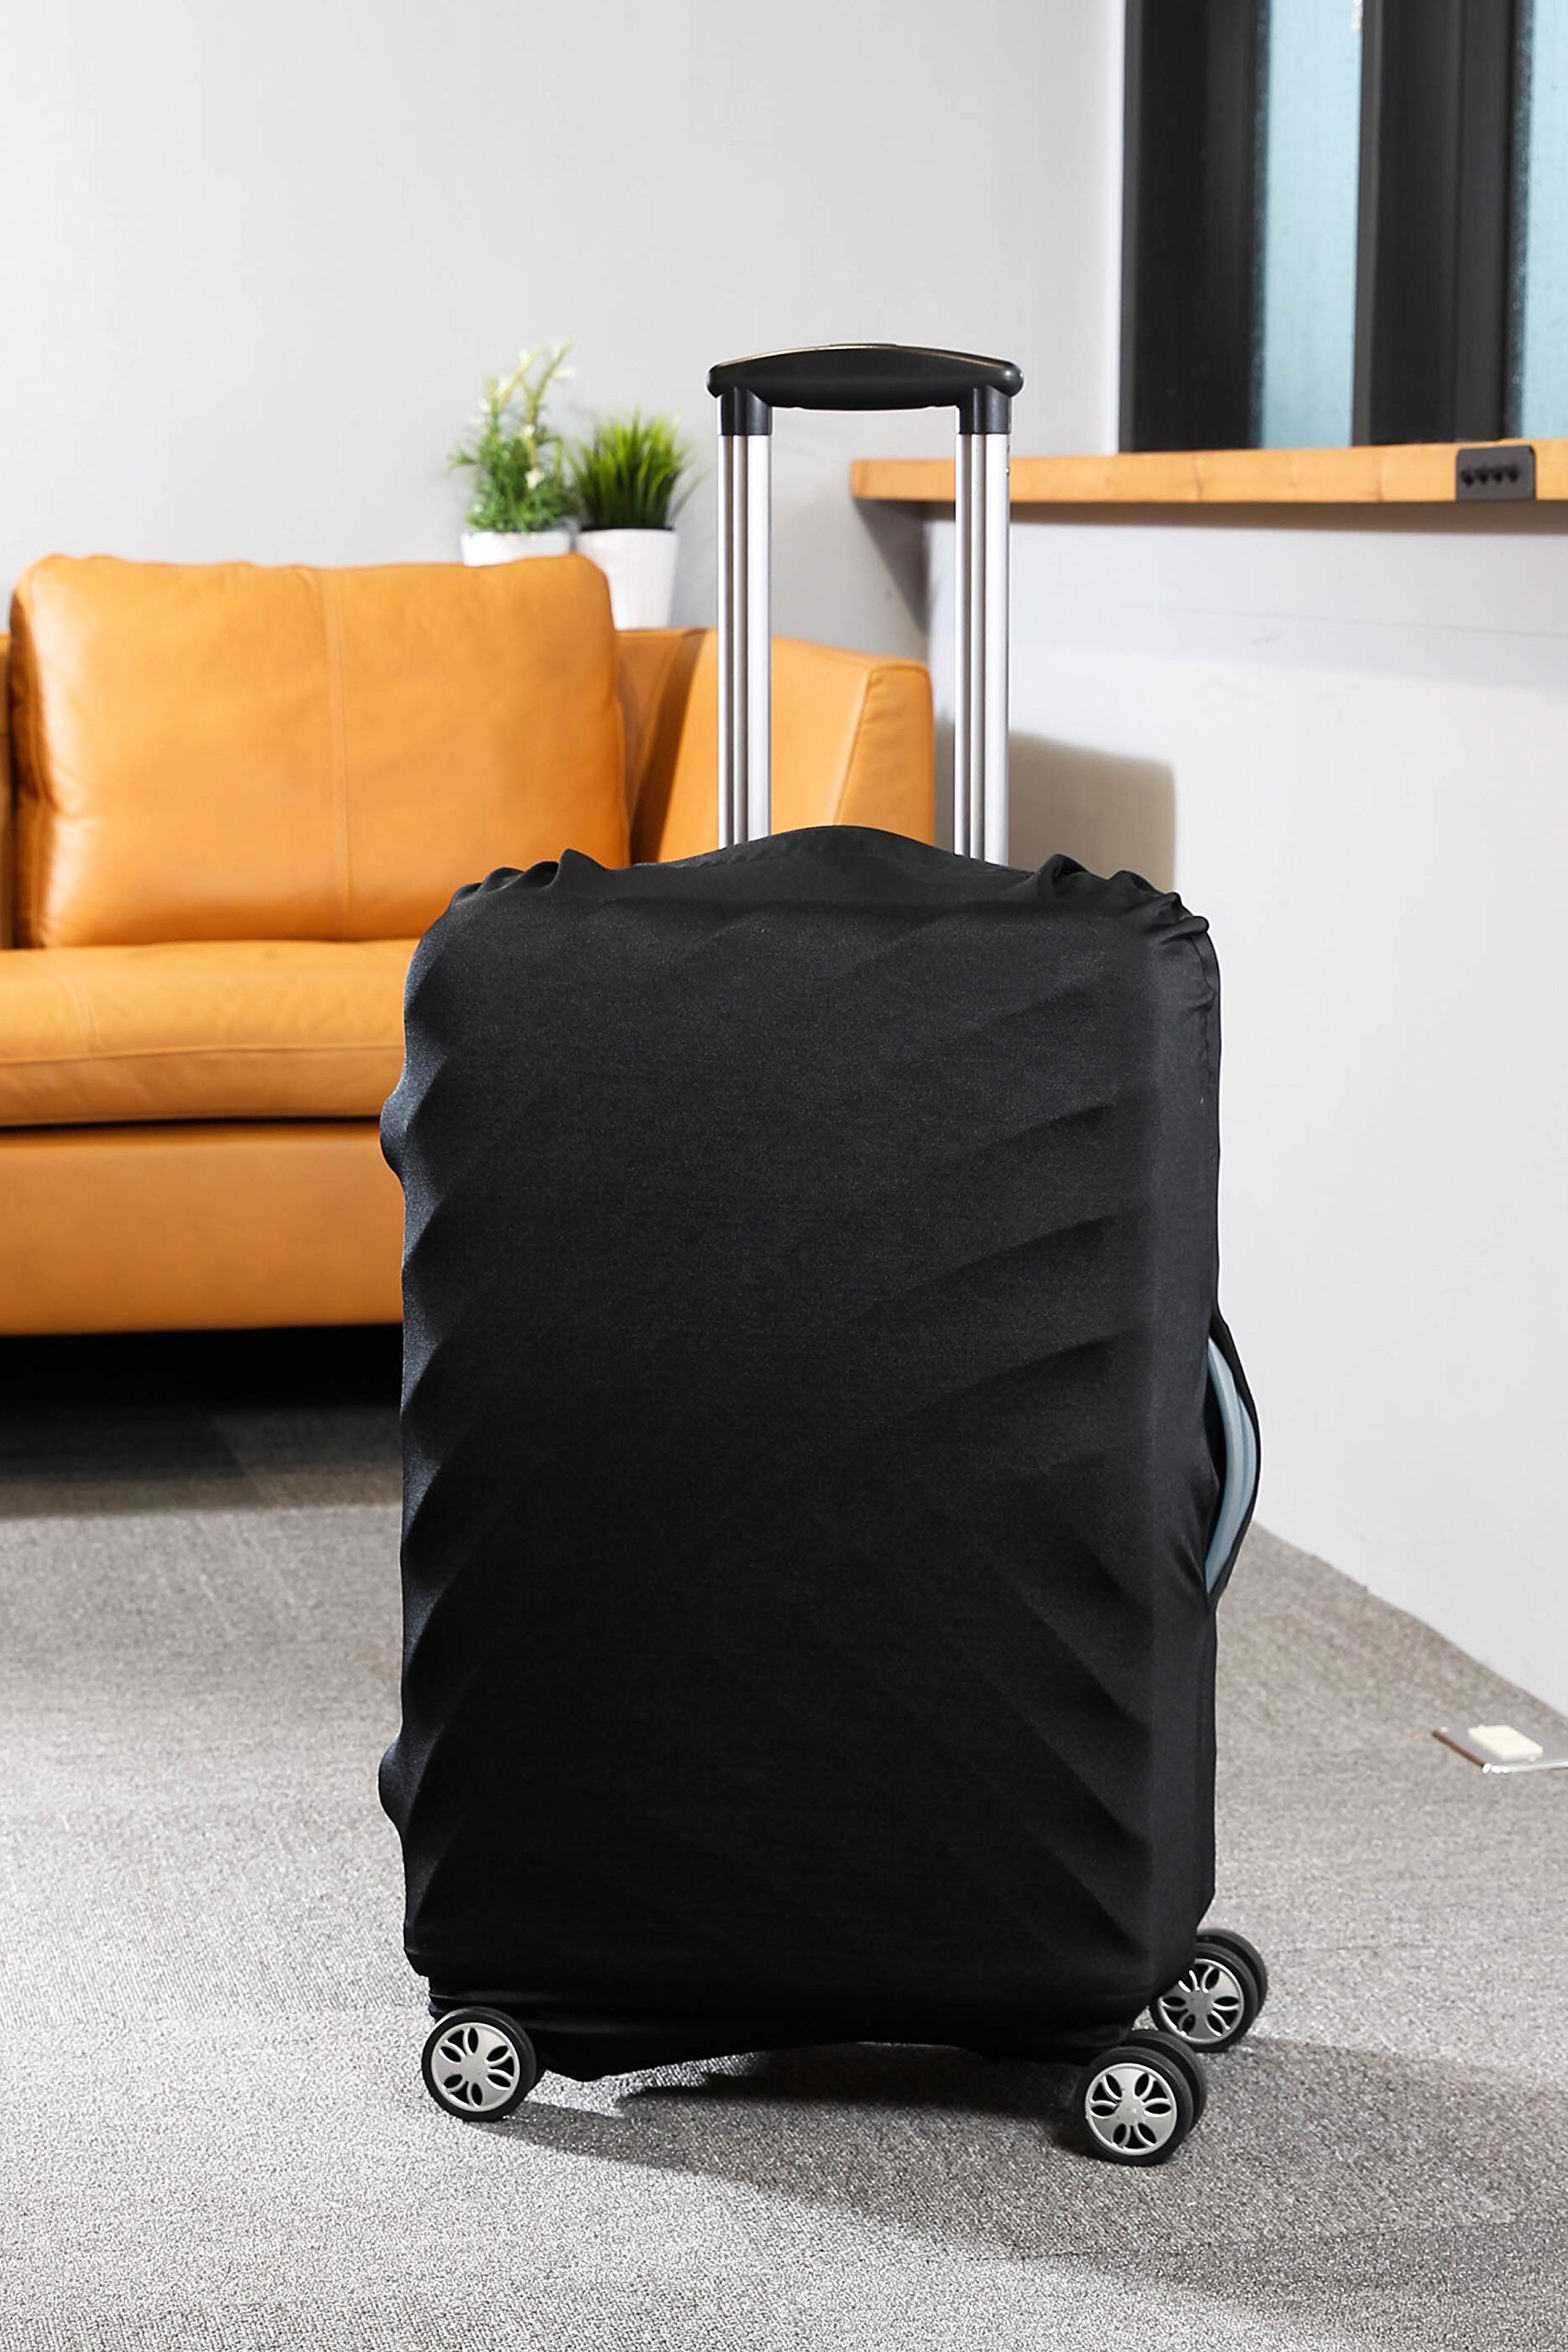 Travel Luggage Protective Cover - Stretchable Suitcase Protector Case, Black, 26 Inches by Juvale (Image #4)